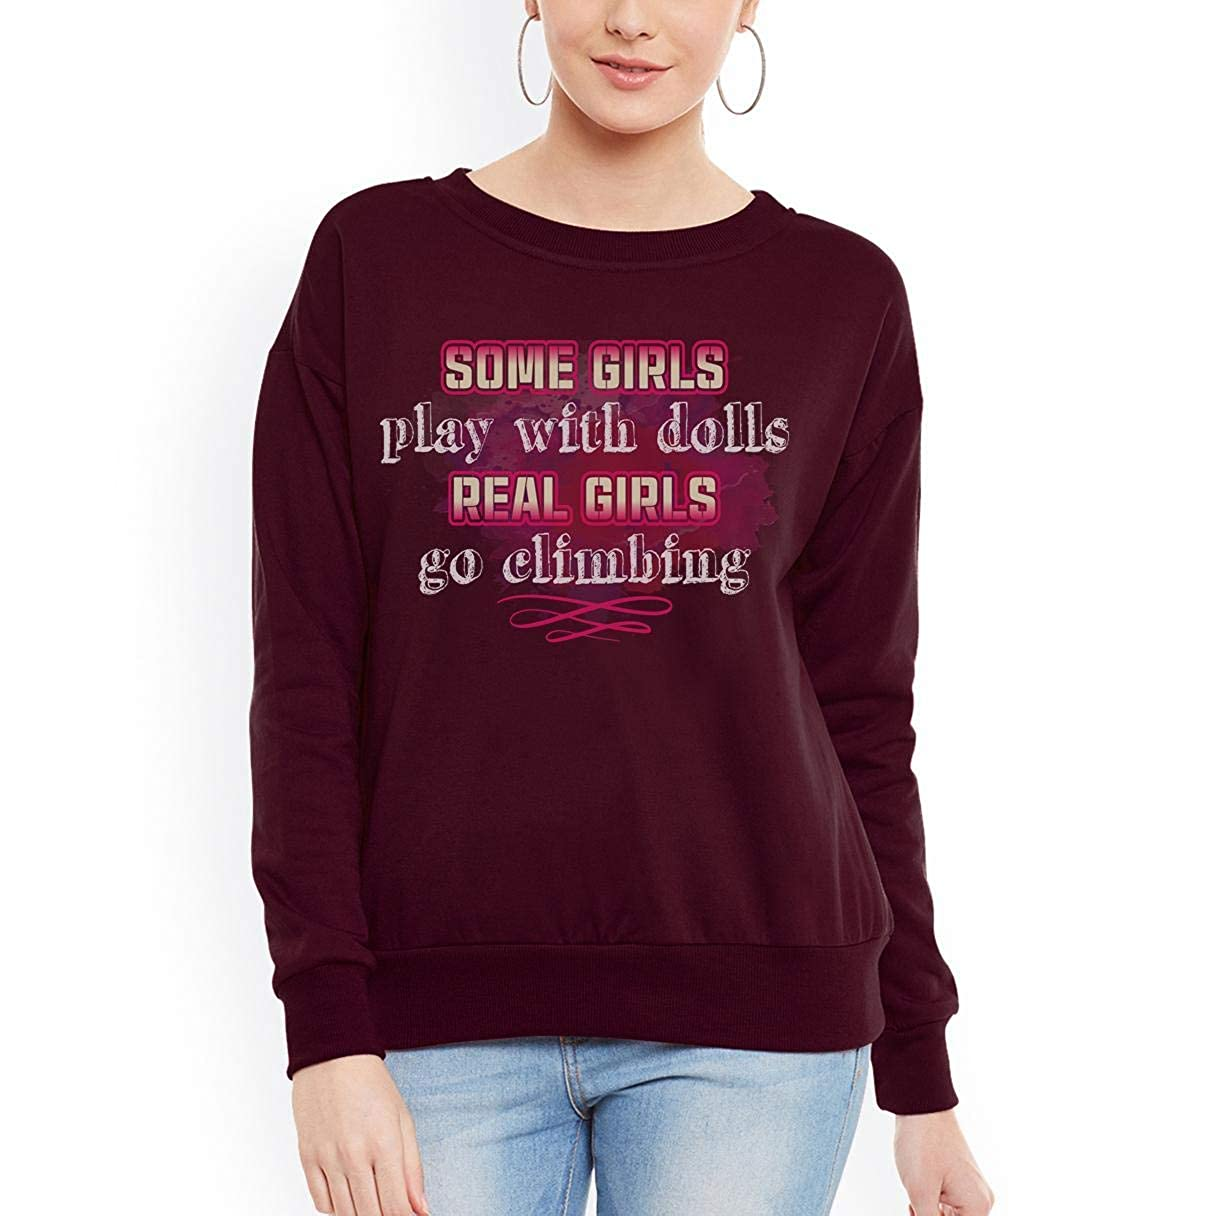 Some Play with Dolls Real Girls Go Climbing Women Sweatshirt tee